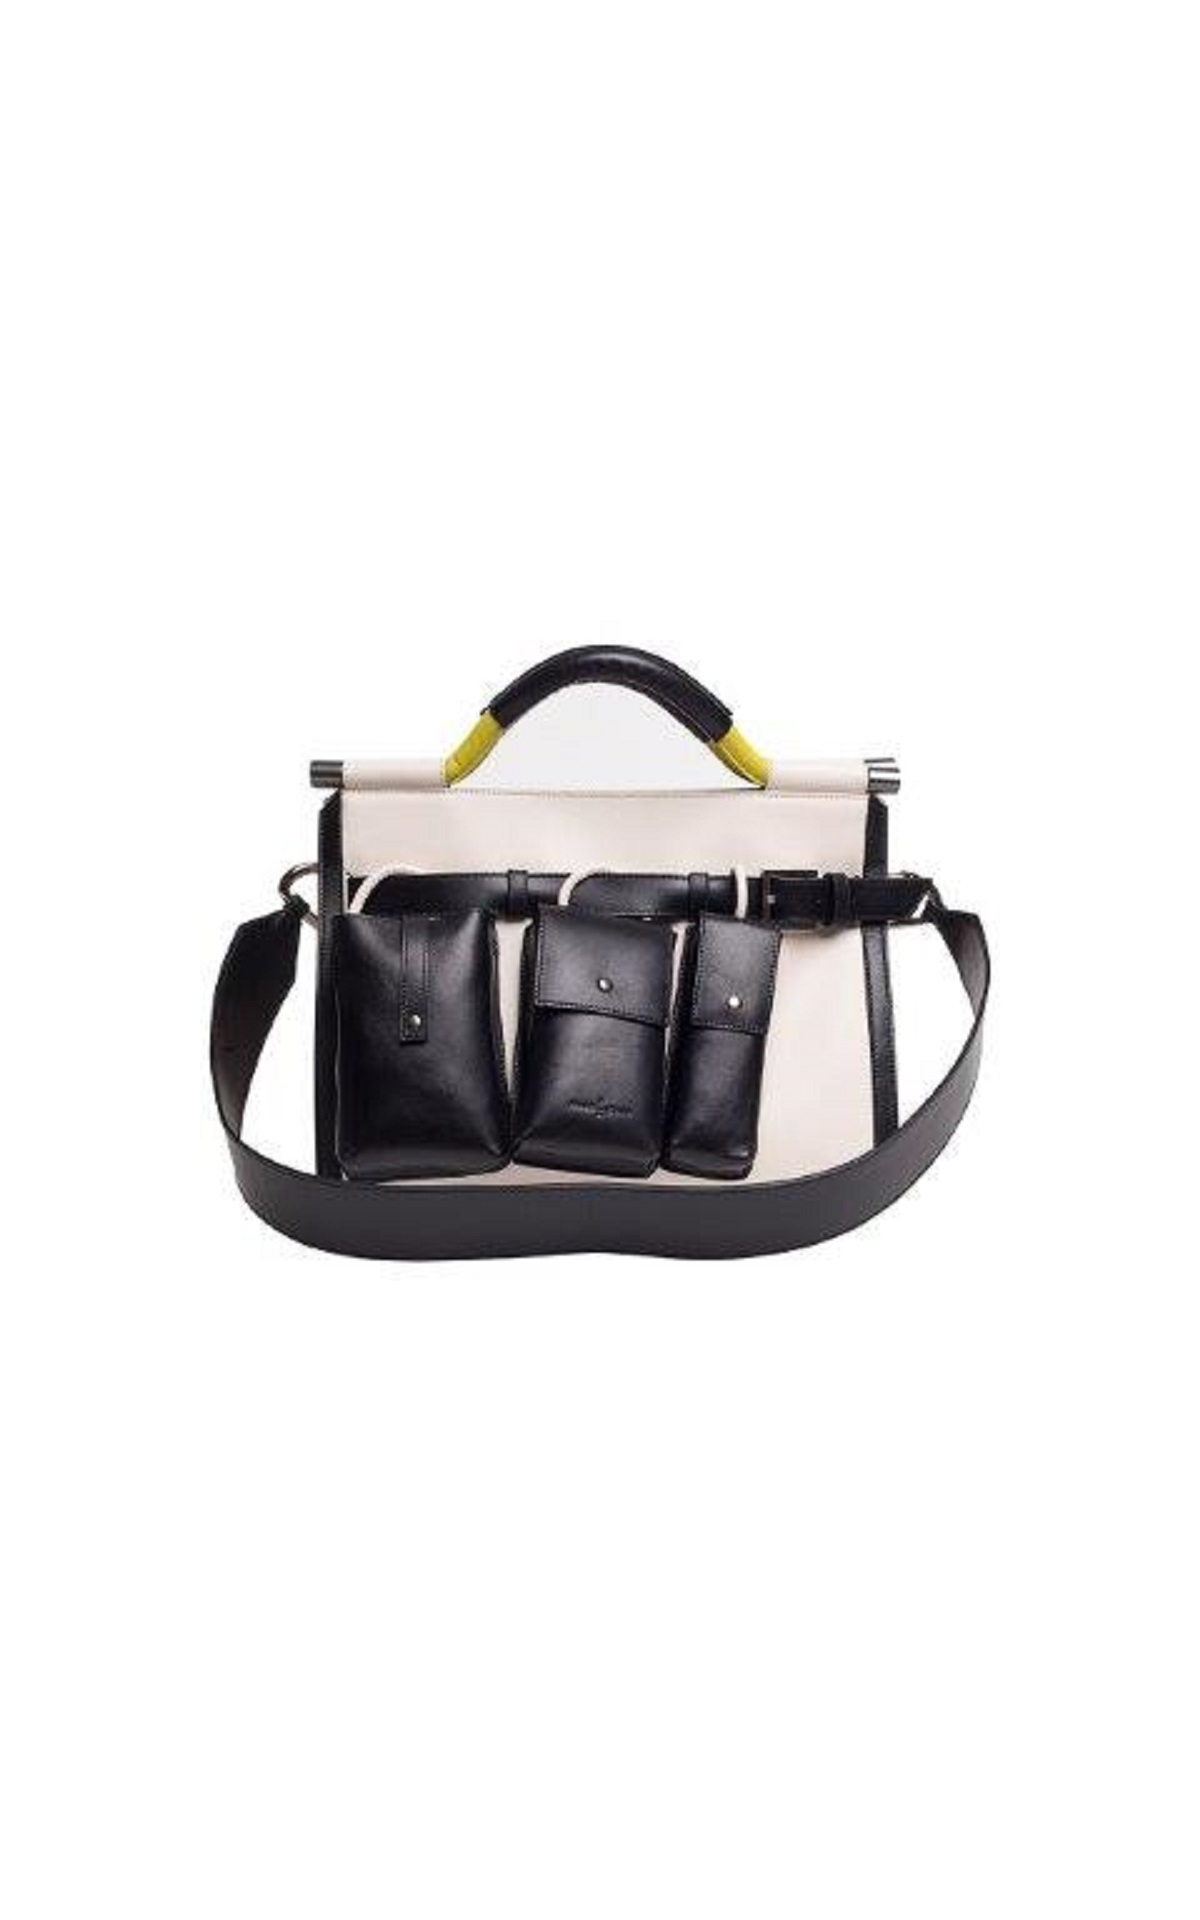 Black and white bag Roberto Verino